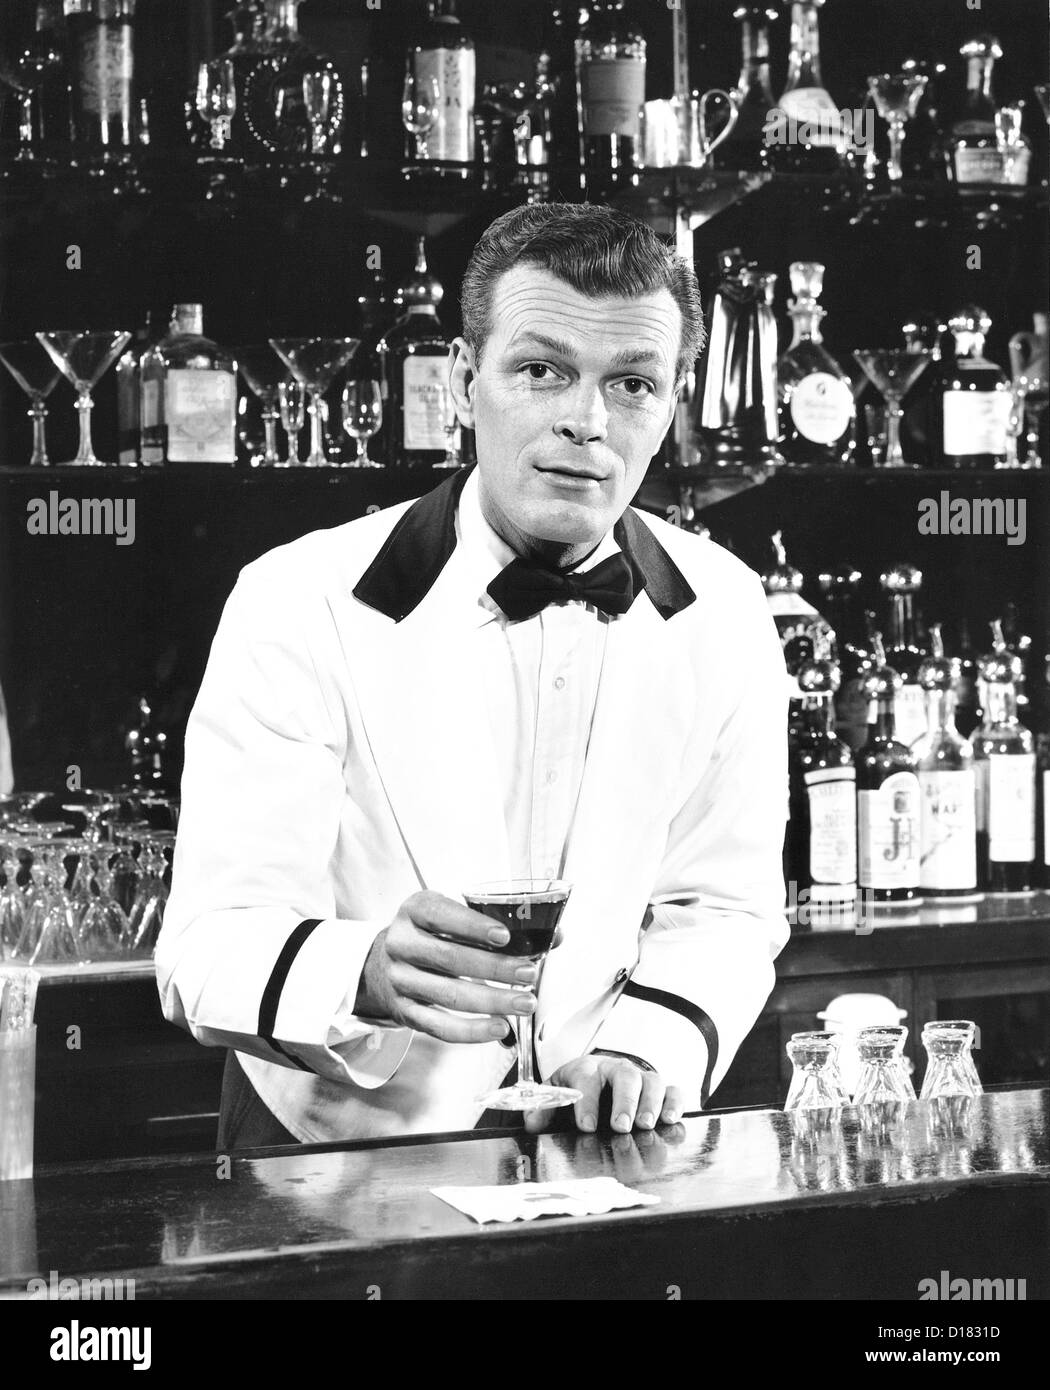 Portrait of a bartender holding a drink - Stock Image